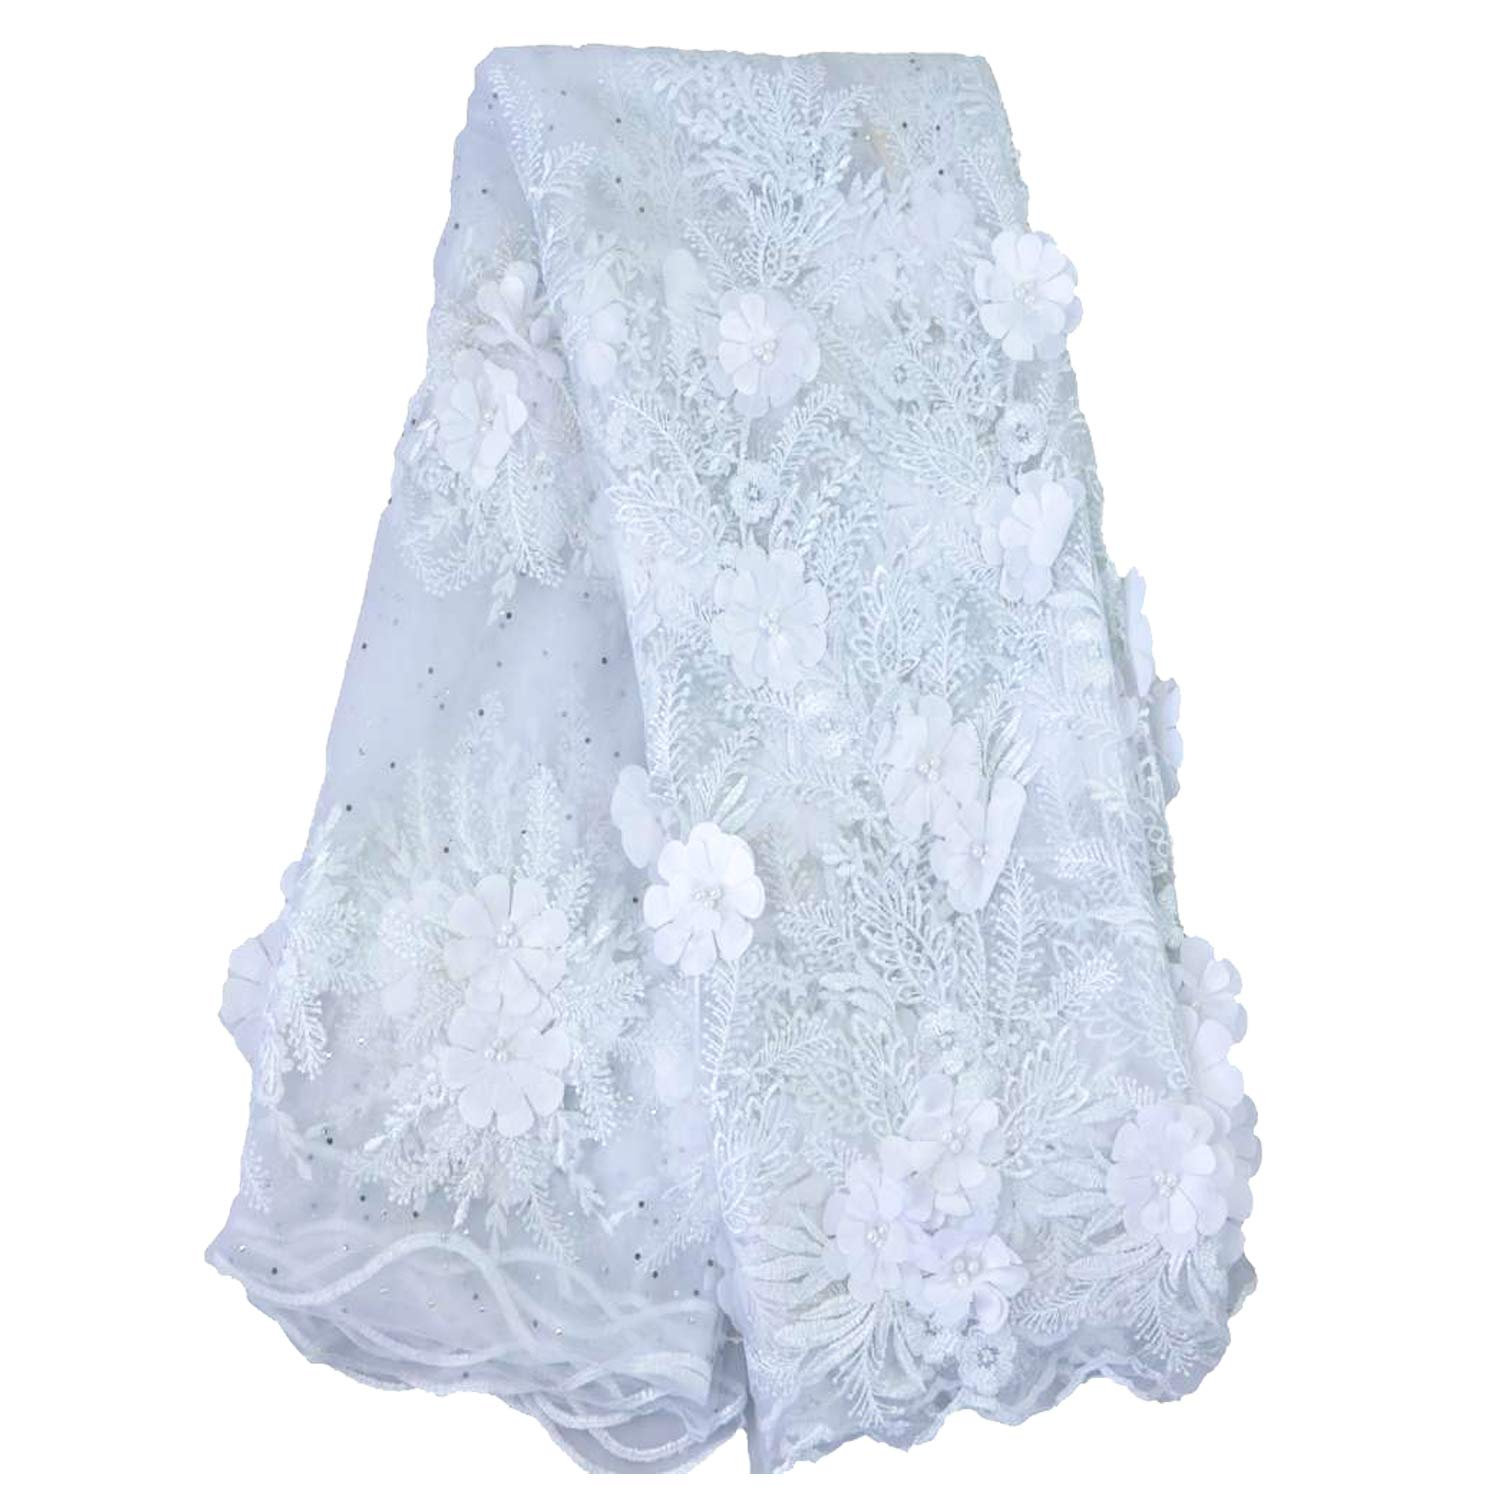 LaceQin5 Yards 3D Swiss Yarn Lace Wedding African Lace Fabric French Royal Lace Fabric (Silver)